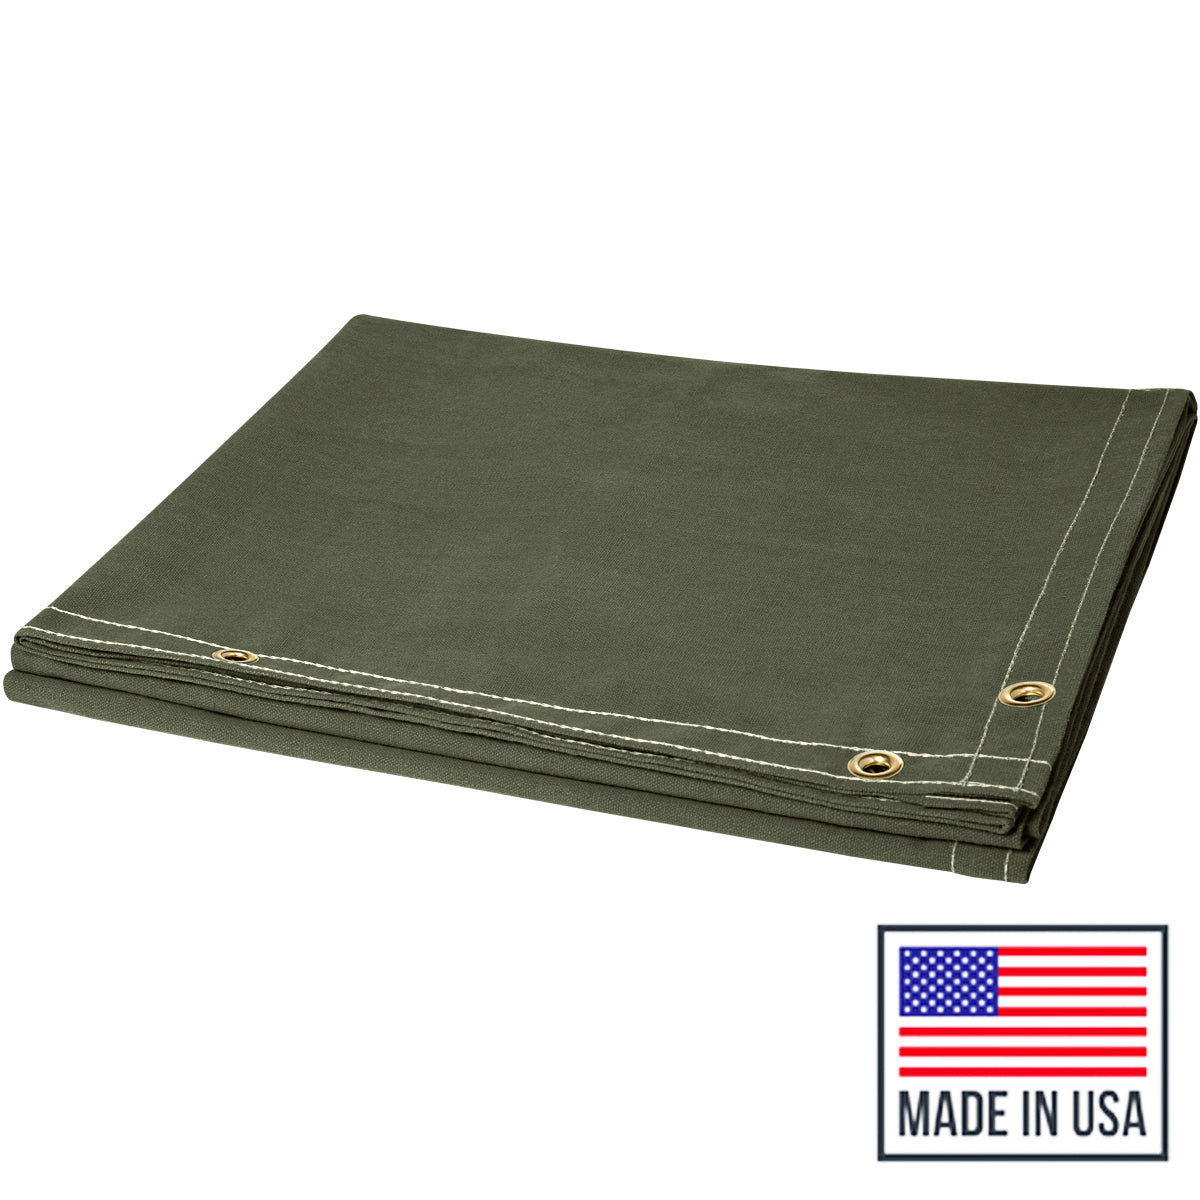 Canvas Welding Curtains made in the USA